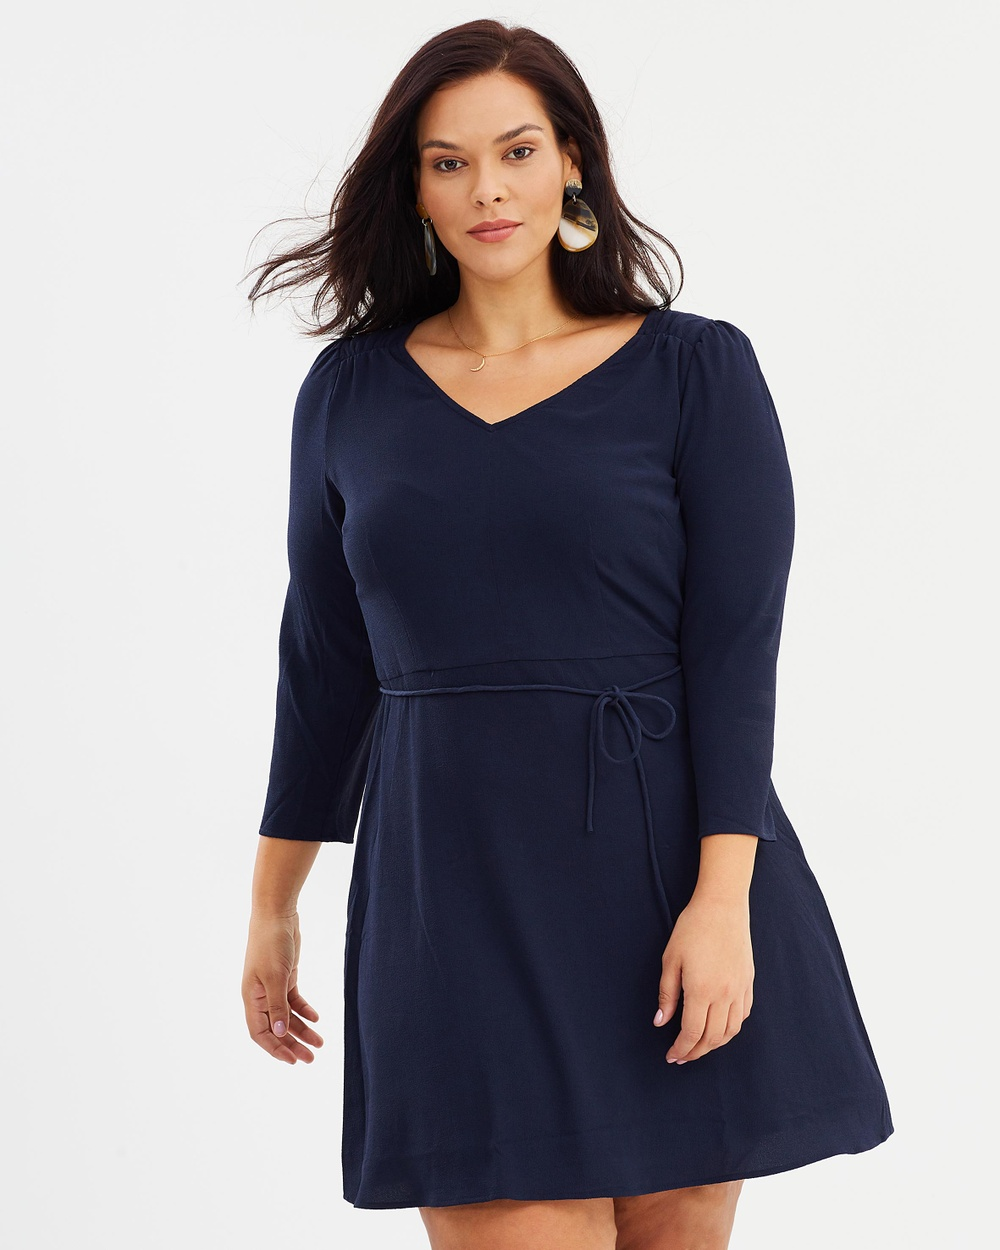 Violeta by MNG Resort Dress Dresses Navy Resort Dress